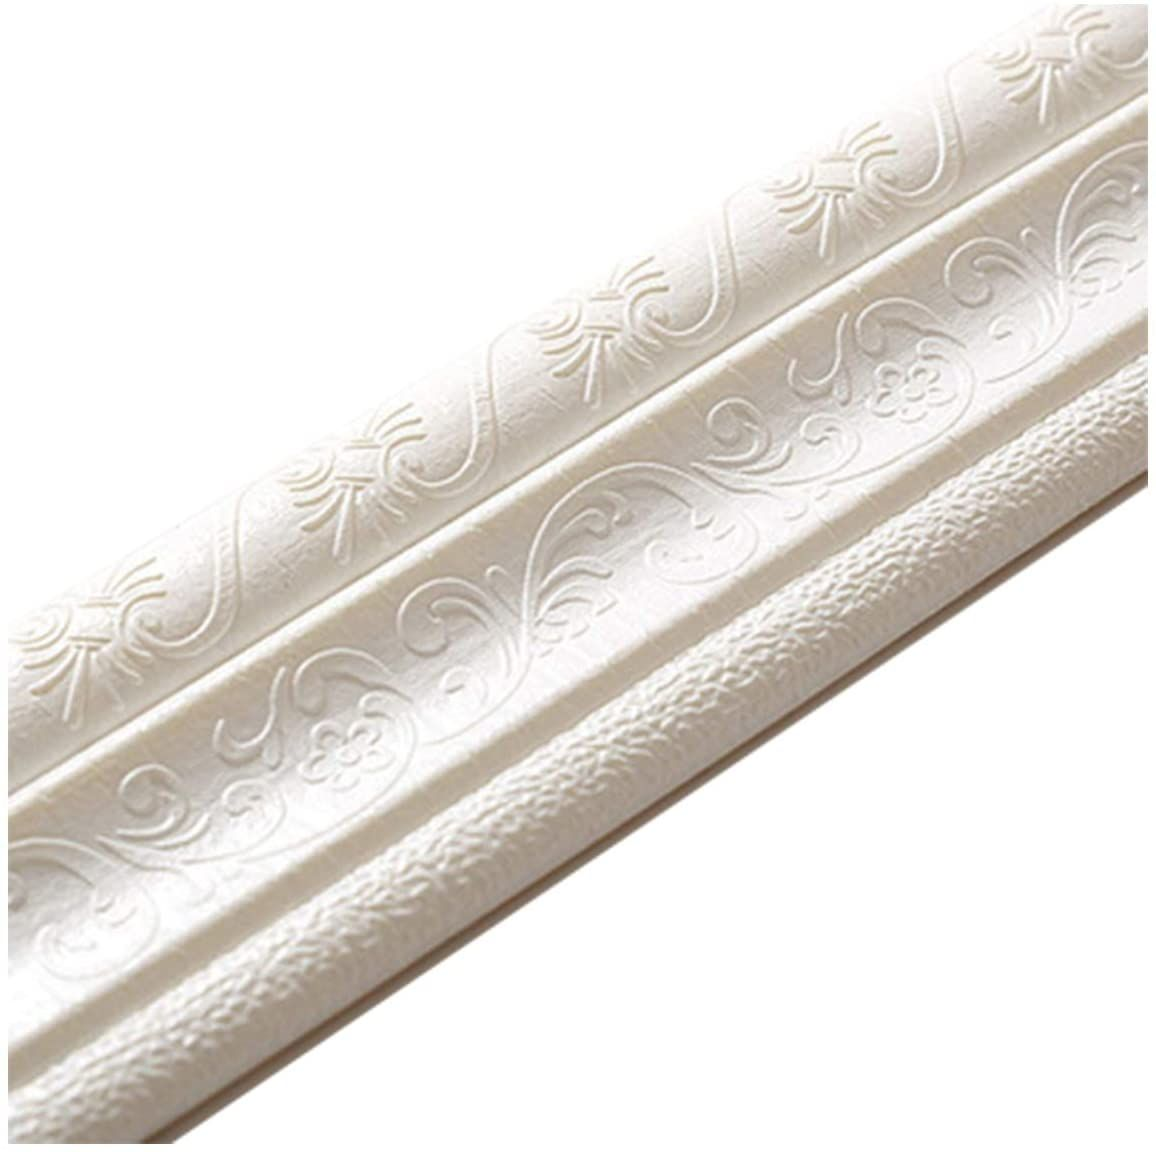 Cozylkx 90 X 3 Self Adhesive Flexible Foam Molding Trim 3d Sticky Decorative Wall Lines Wallpaper In 2020 Moldings And Trim Decorative Wall Molding Diy Molding